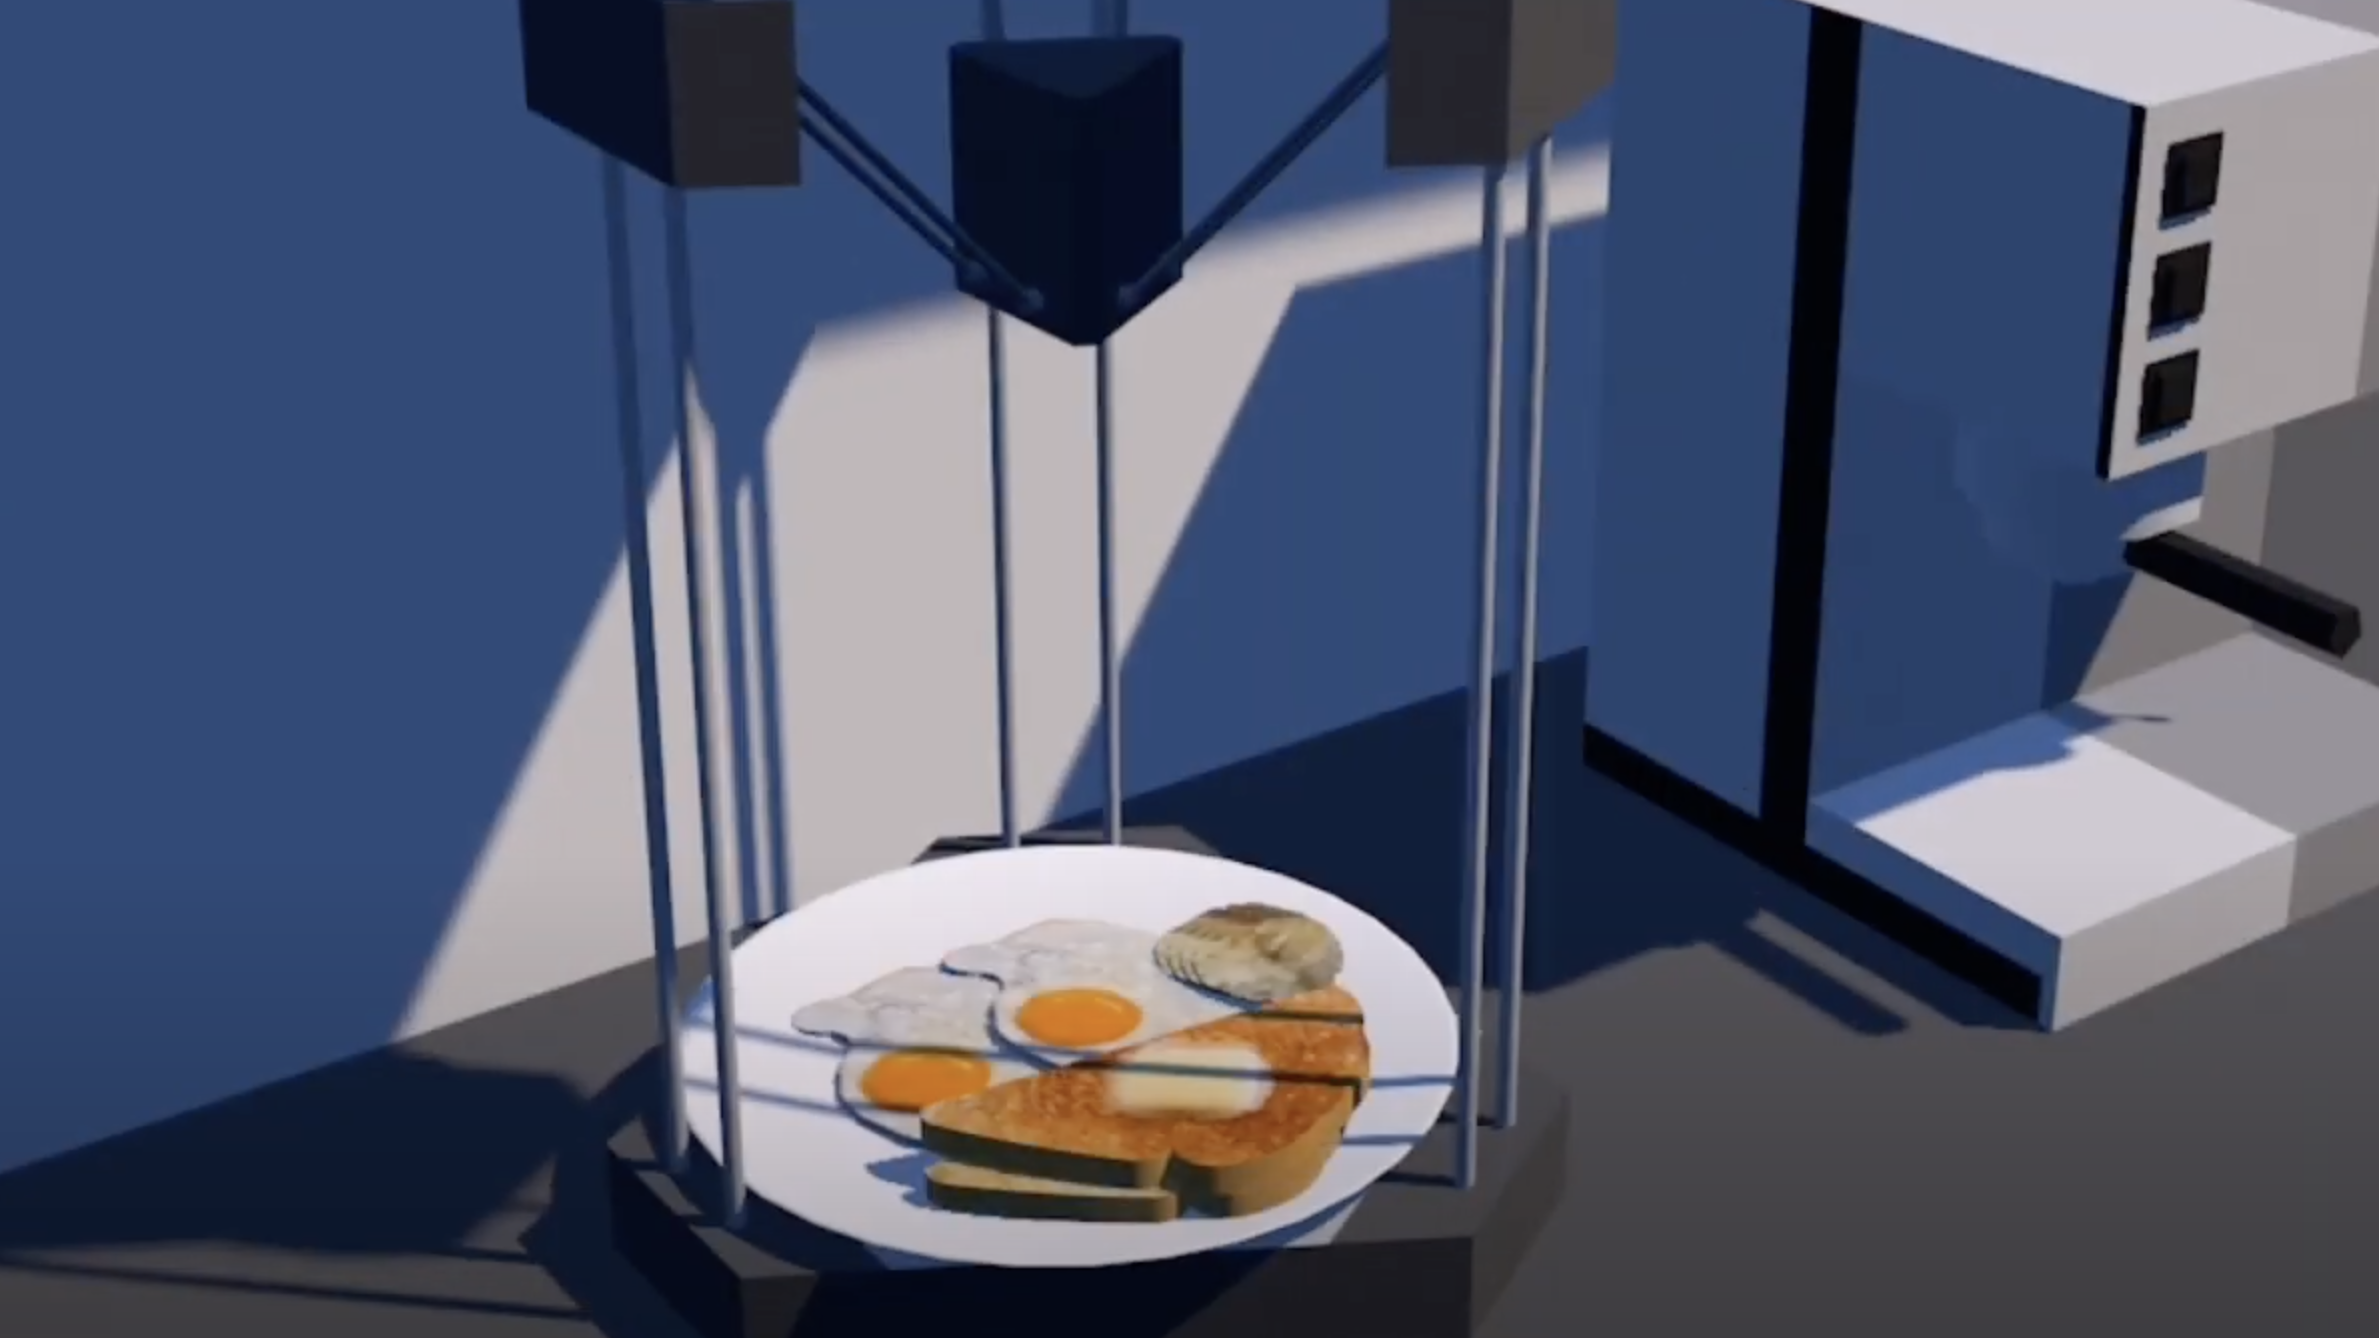 Computer-generated image showing a plate of breakfast foods in a blue interior.